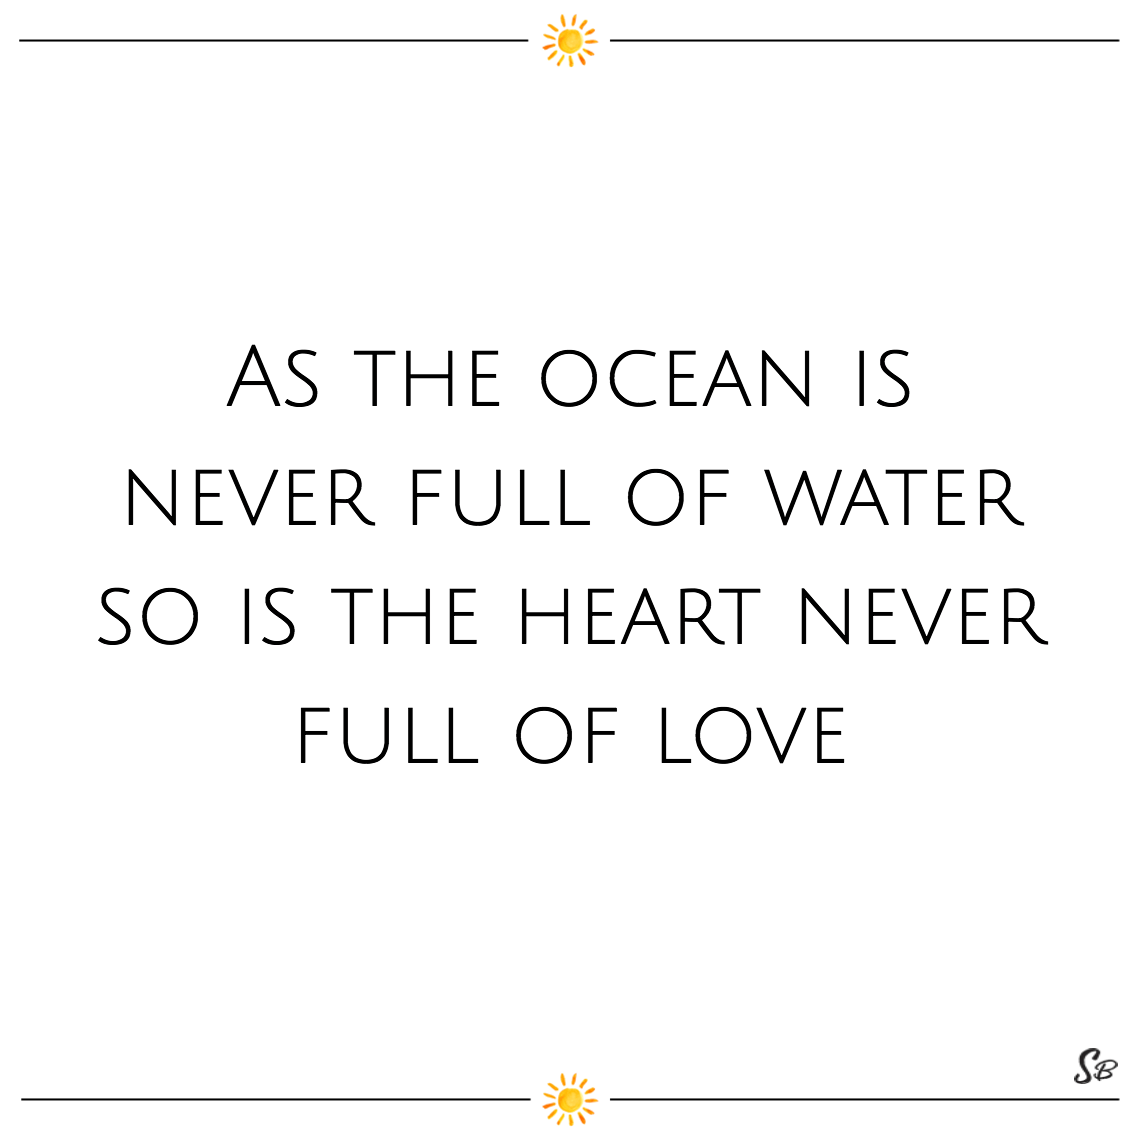 As the ocean is never full of water so is the heart never full of love